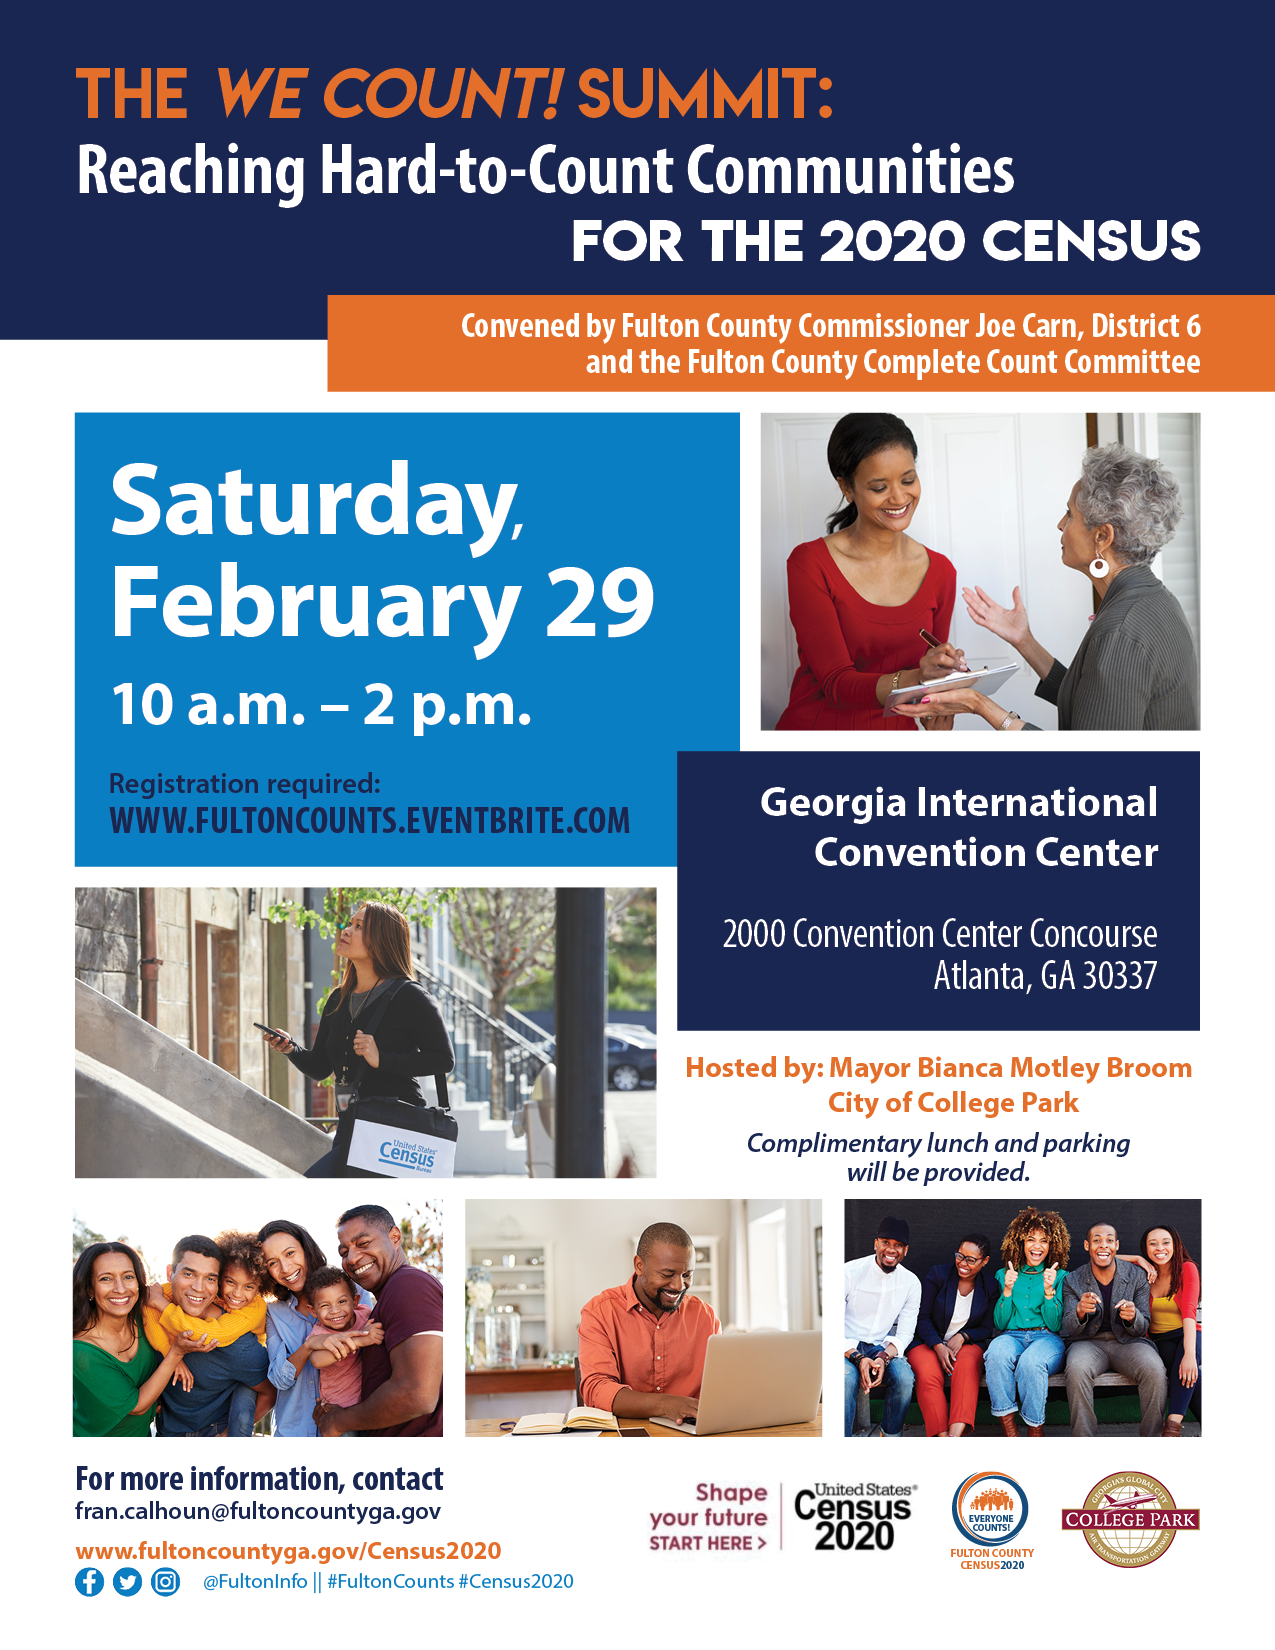 We Count Summit February 29 at 10am-2pm